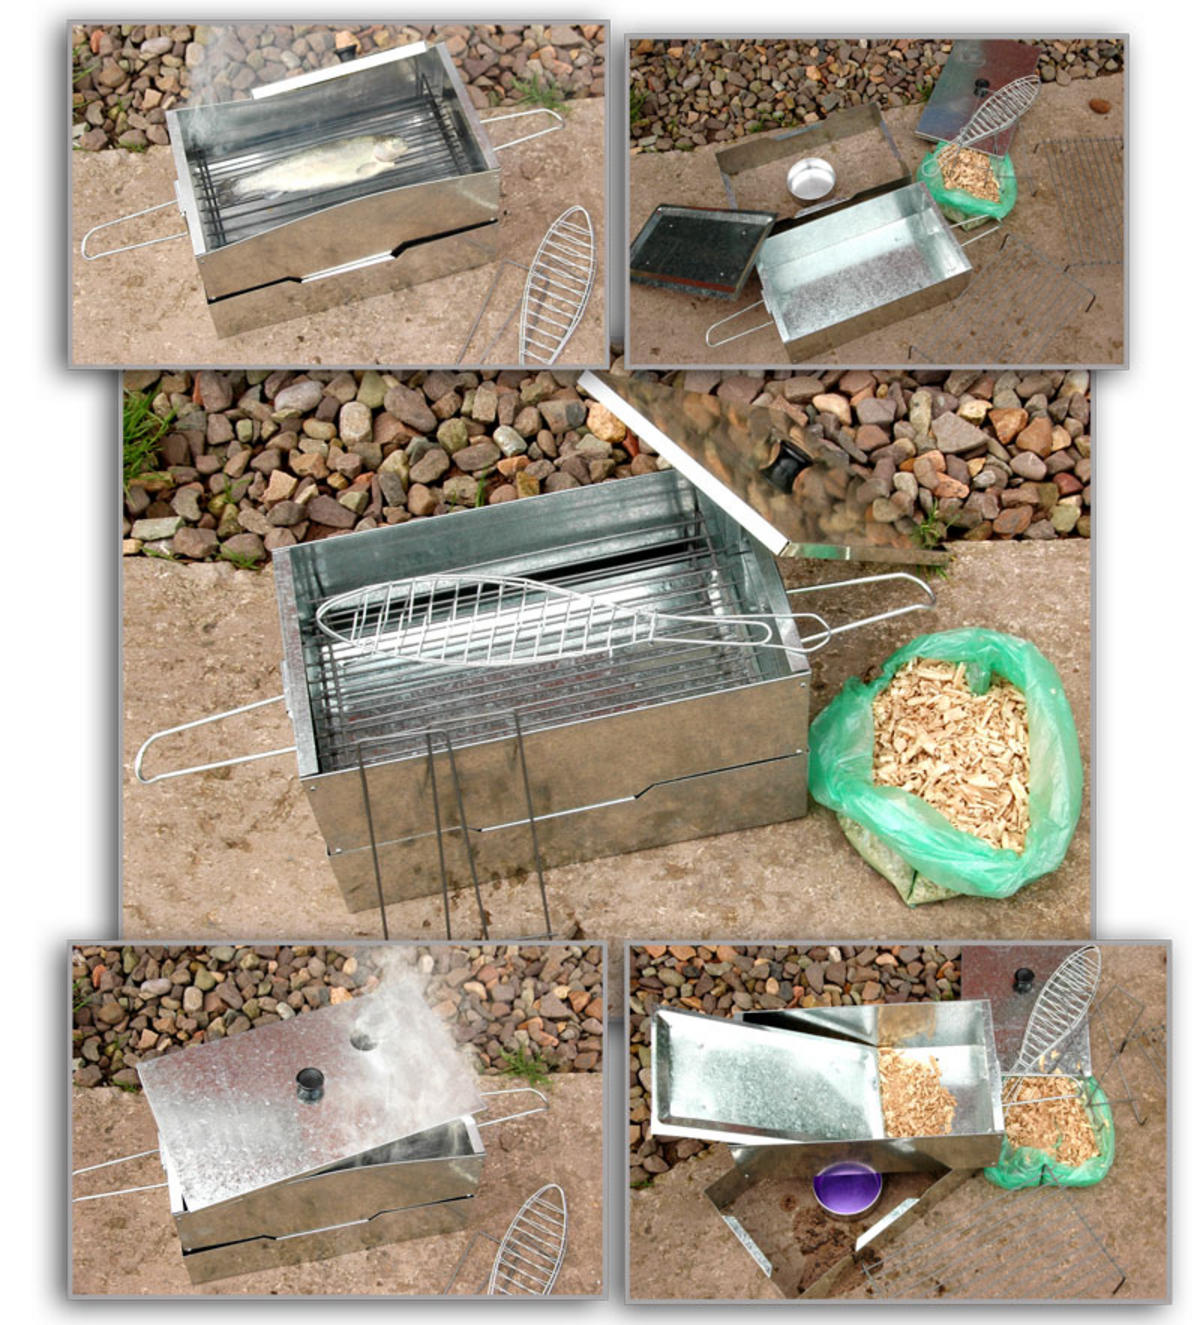 NEW FISH MEAT HOT SMOKER COOKER COMPLETE WITH FREE WOOD CHIPS & FUEL